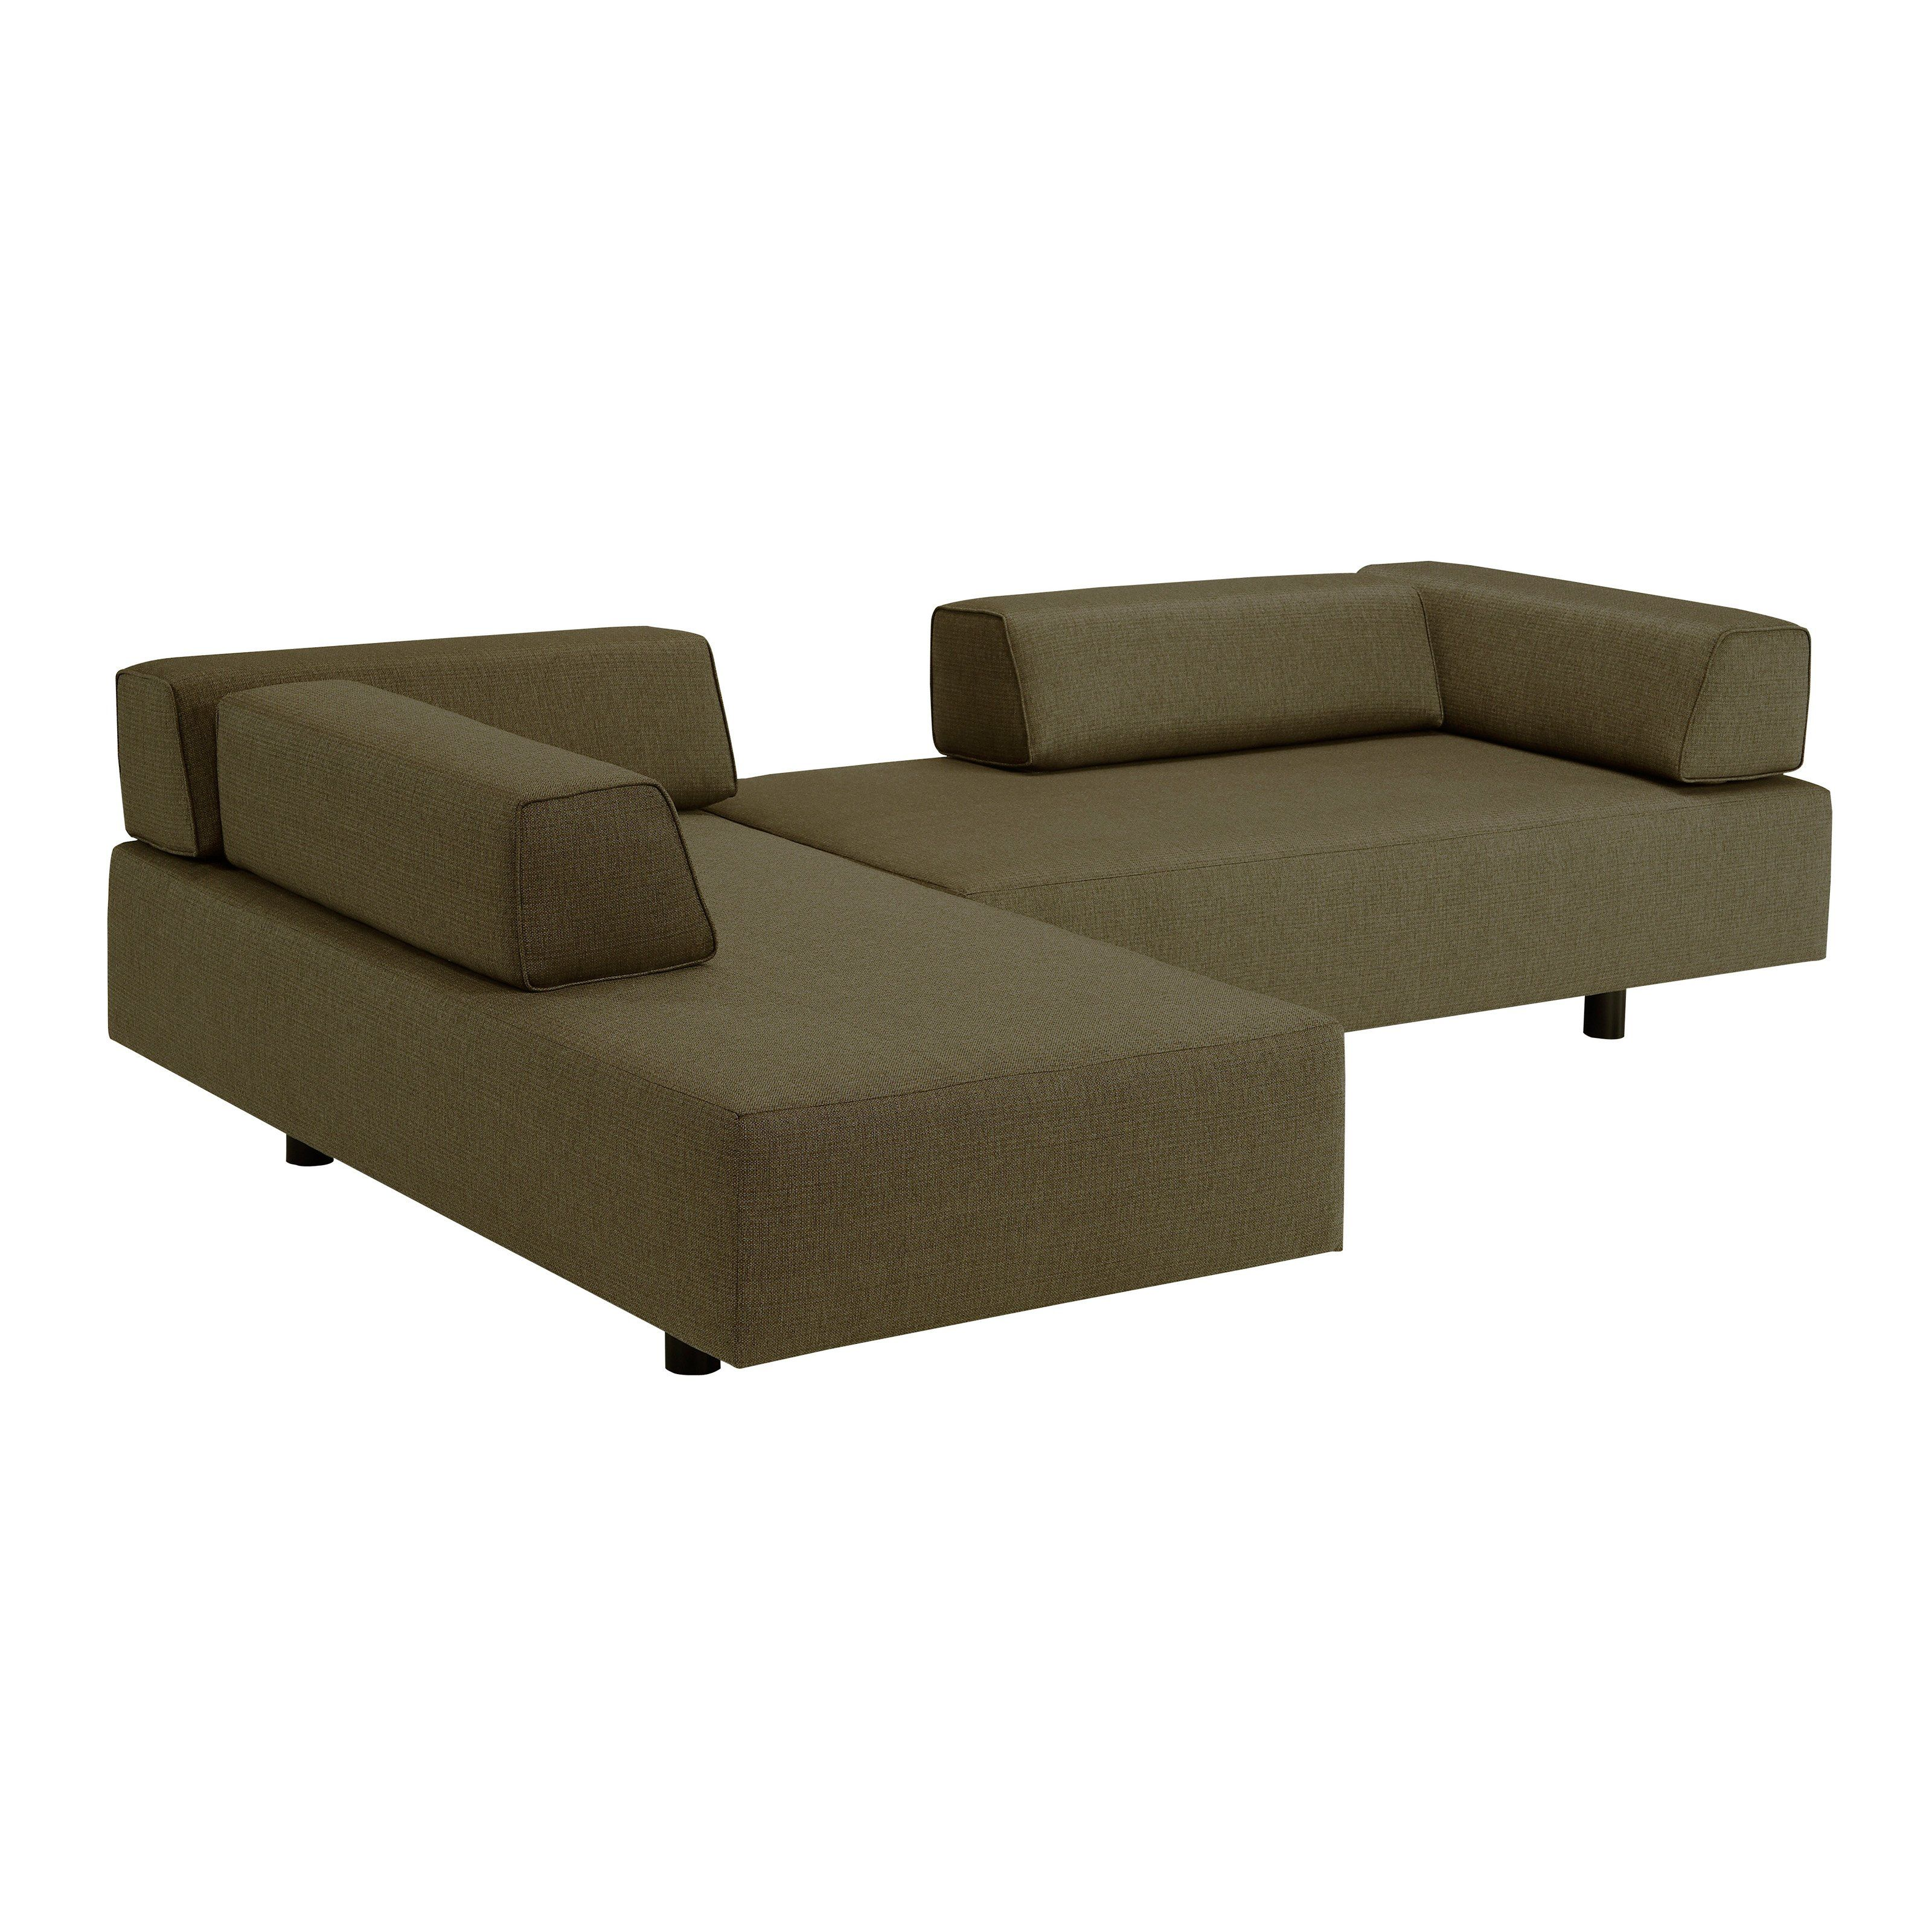 sofa bed boards support best power reclining leather supports home design sagging board ideas